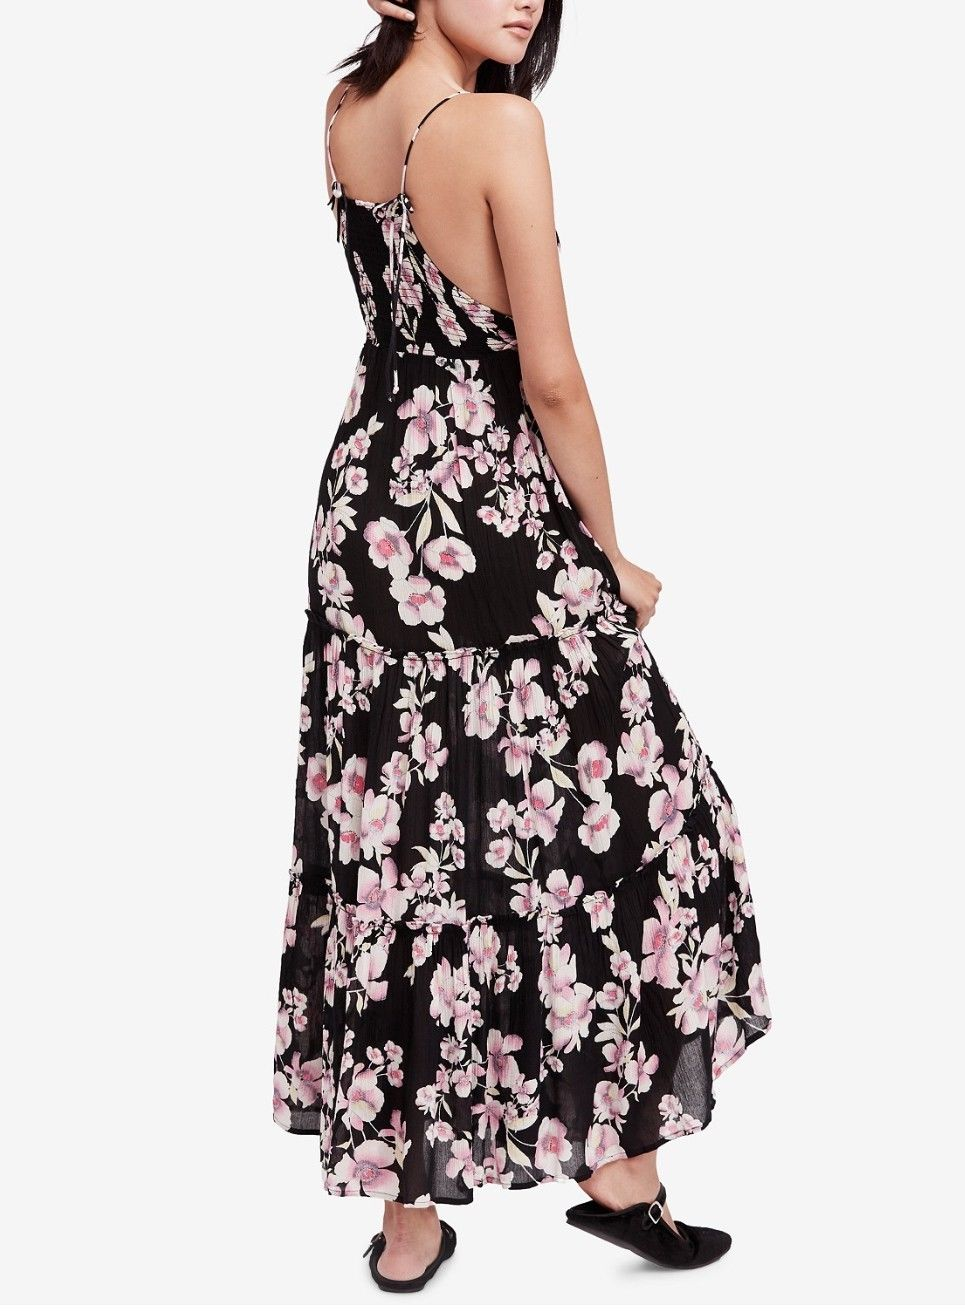 3218918dbbe Great FREE PEOPLE Garden Party BLACK Floral Print Maxi Dress Size S ...